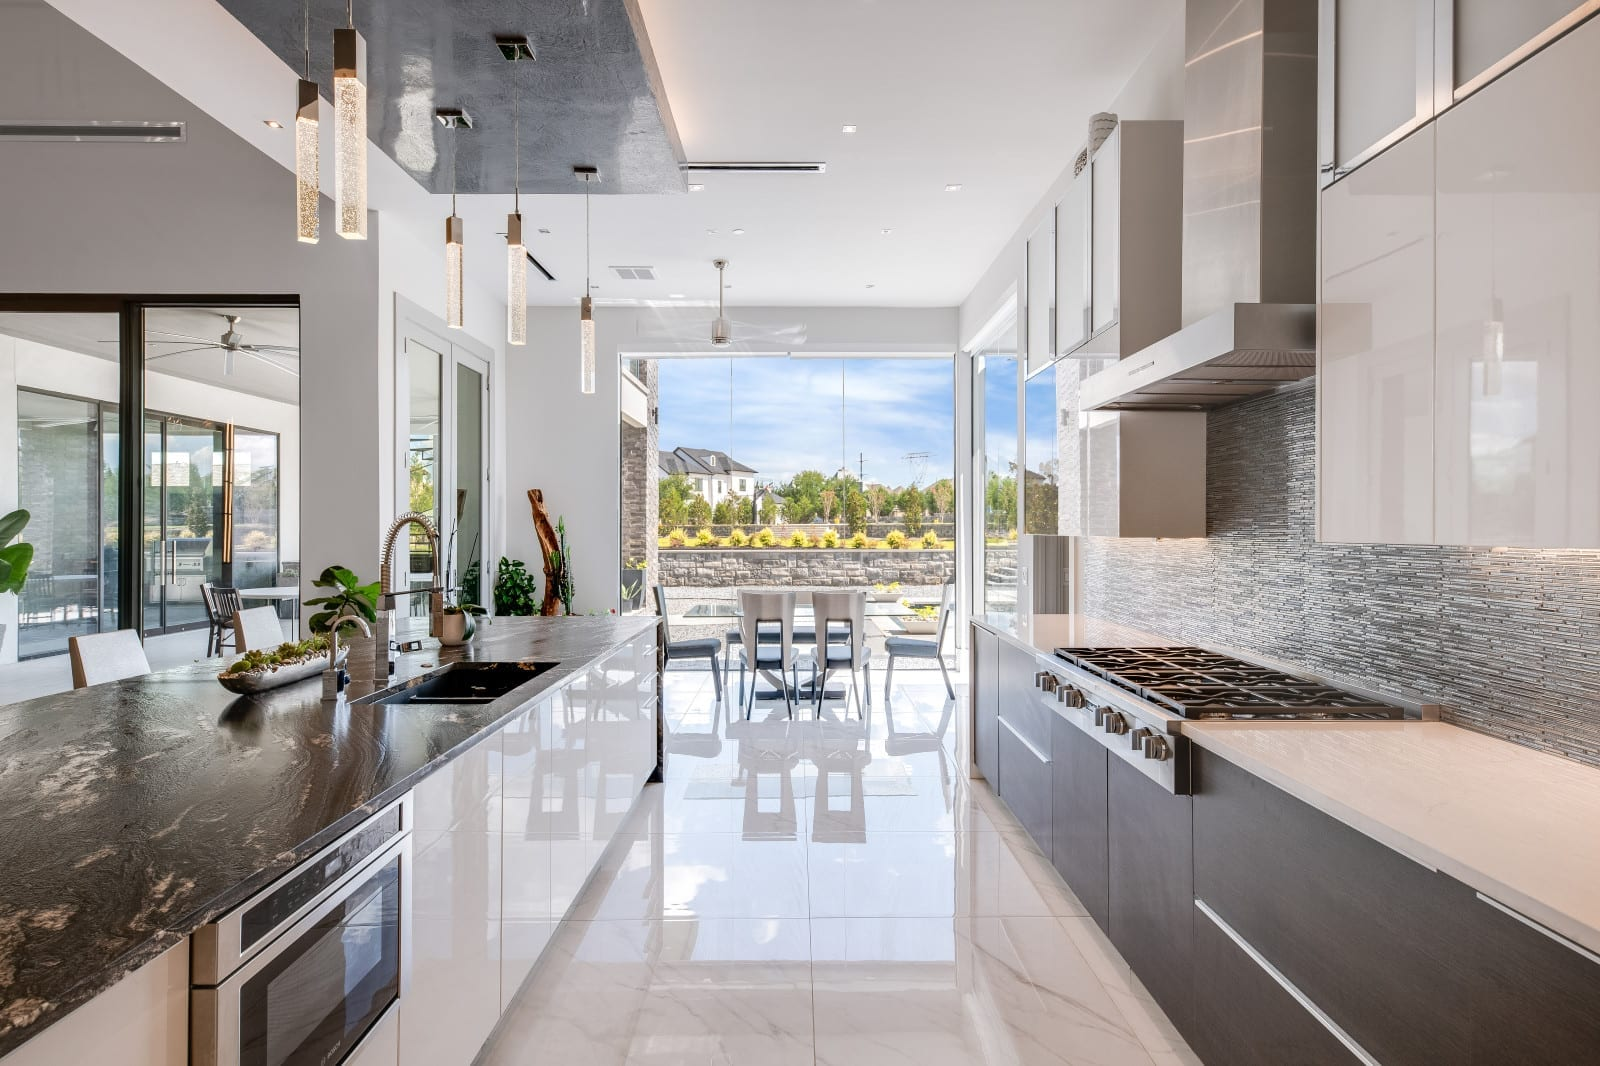 a lovely open space designed by Frisco luxury home builders with Millennial design and build